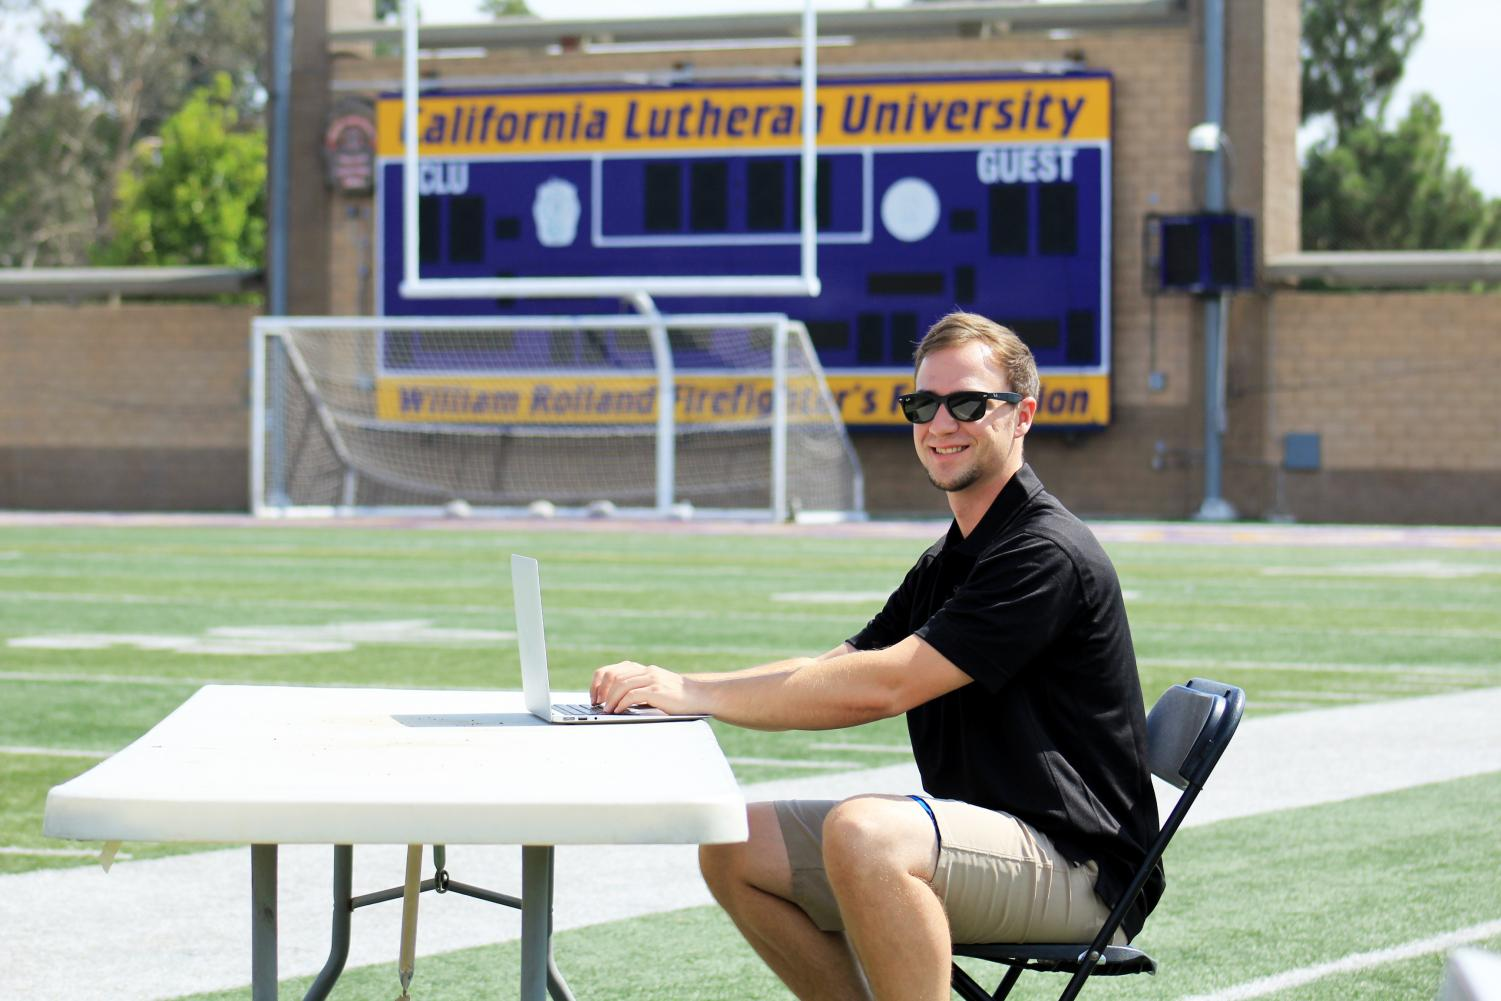 Jeff Rebello comes full circle returning to Cal Lutheran as the assistant sports information director.